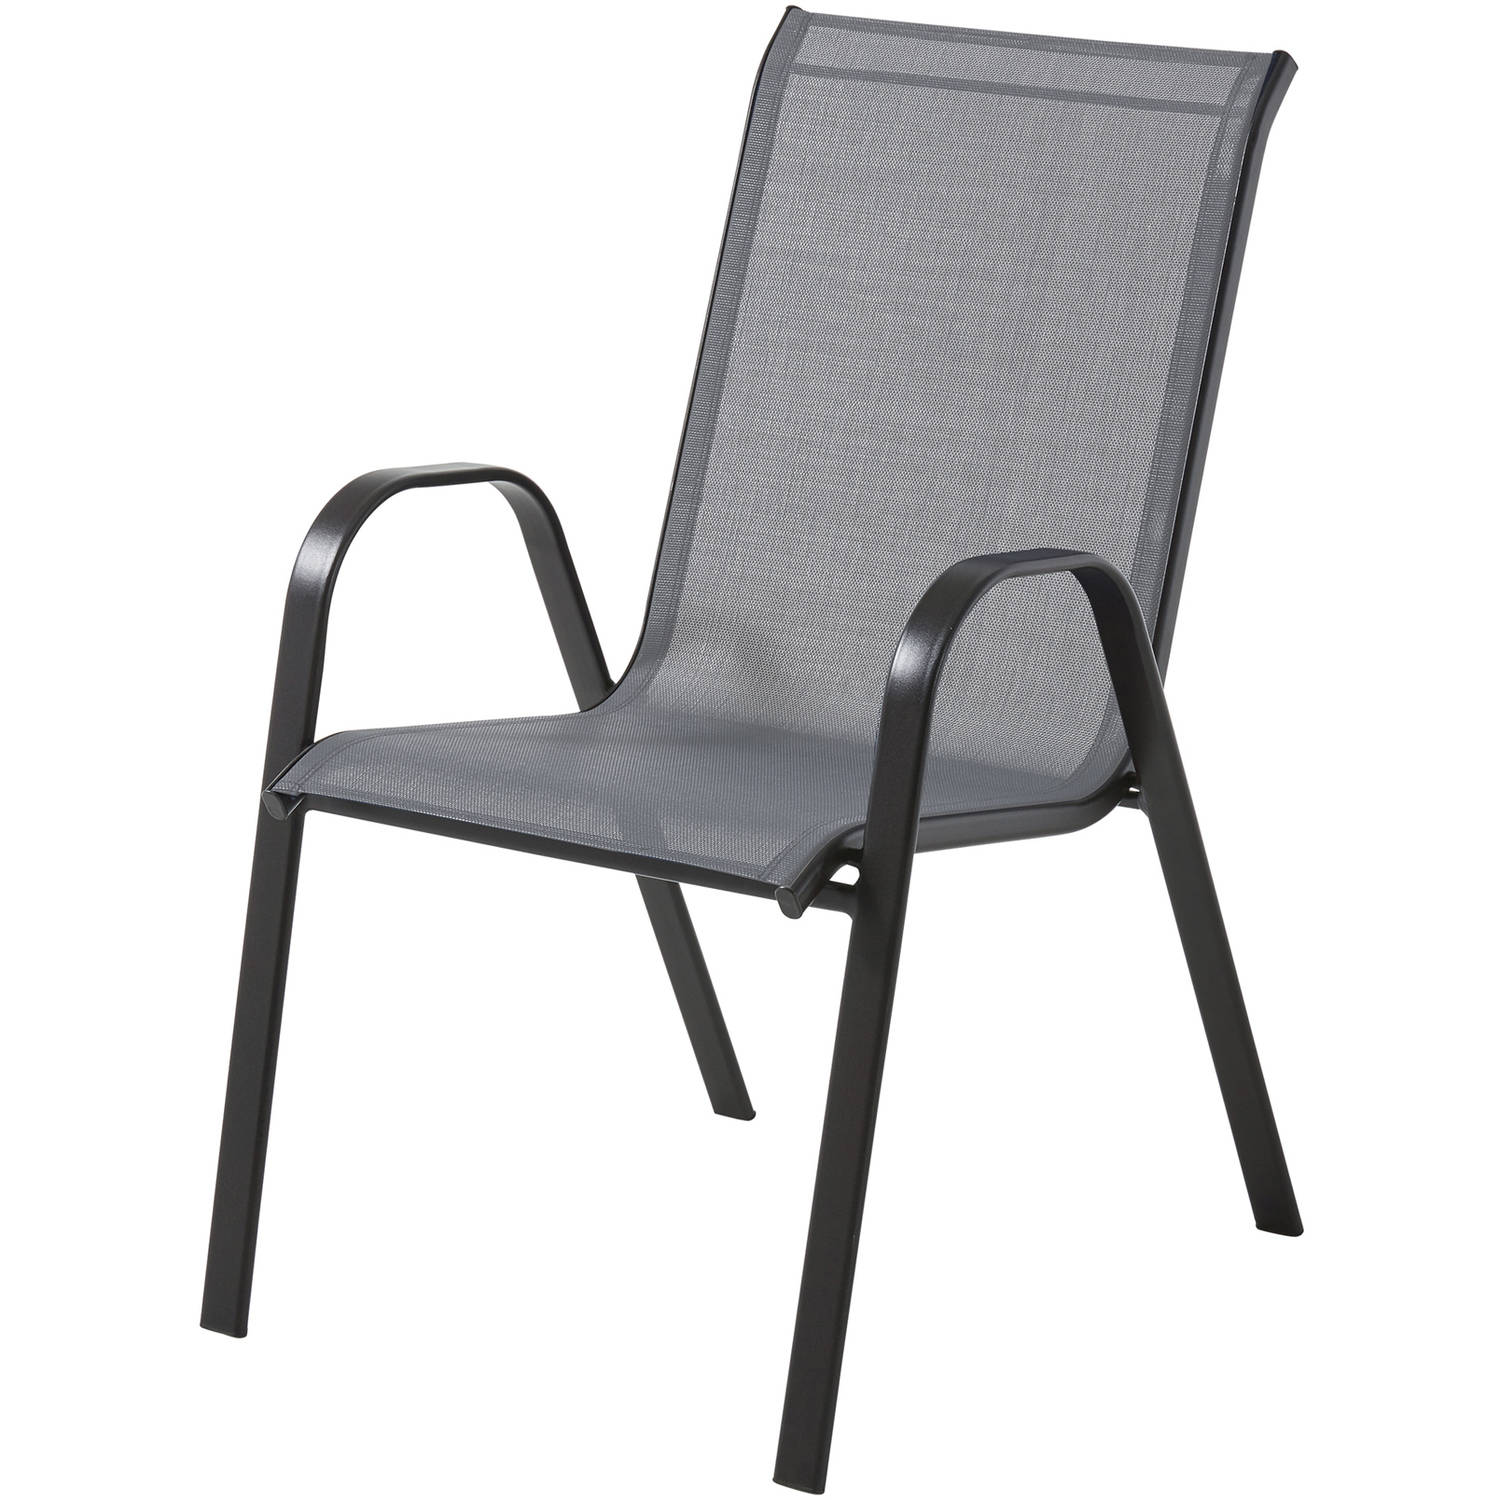 Stackable Lawn Chairs Mainstays Heritage Park Stacking Sling Chair Grey